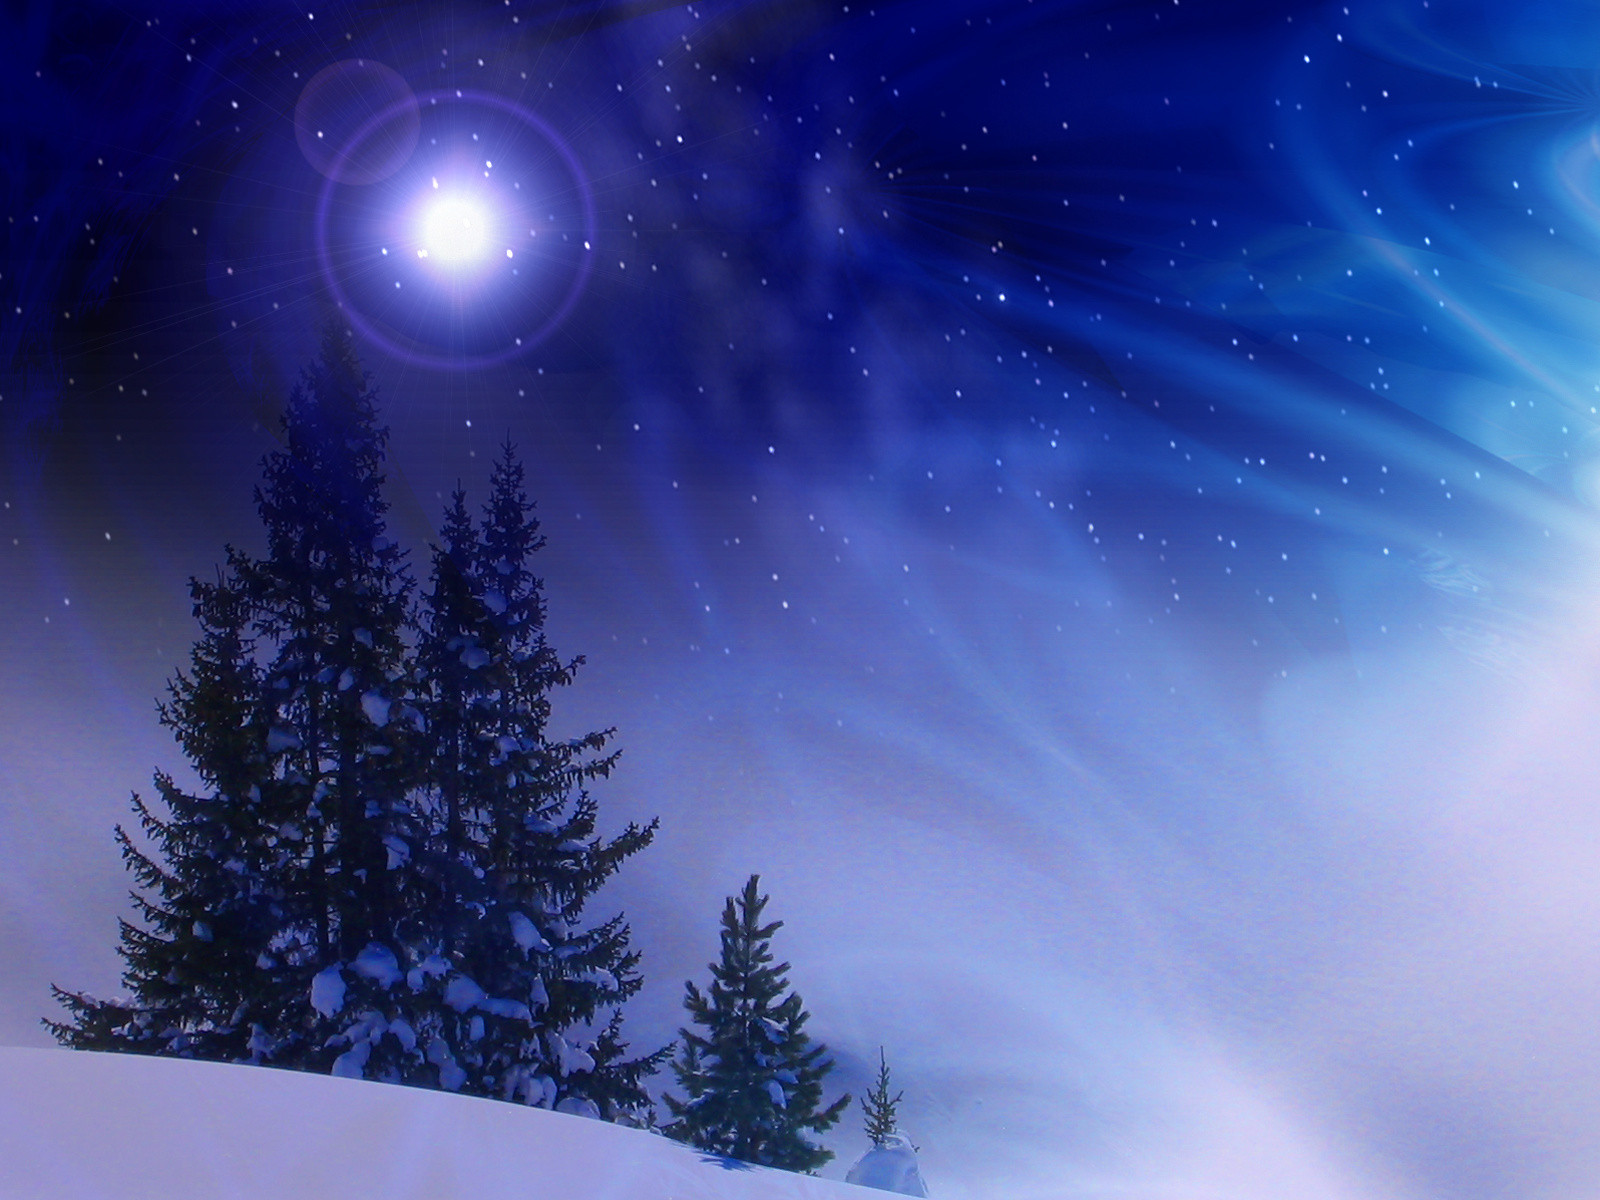 Christmas Winter Night wallpapers and images 1600x1200